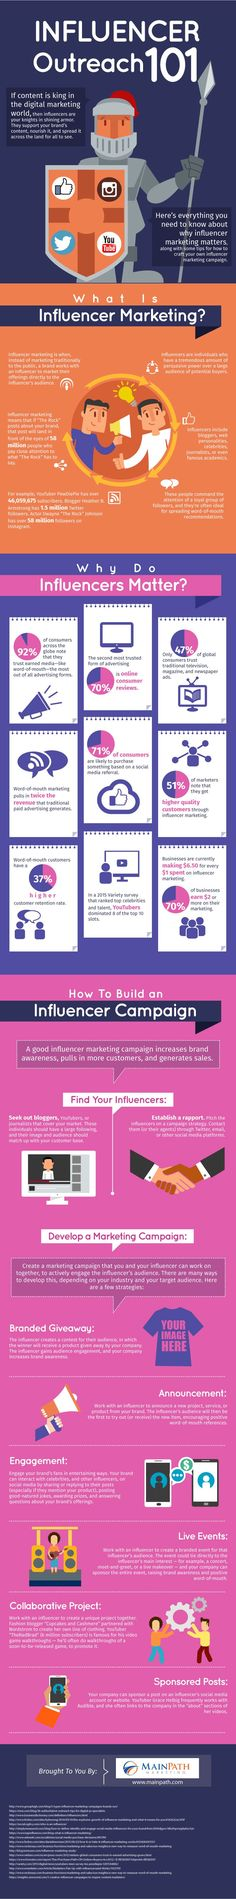 Influencer Outreach 101 #Infographic #Marketing